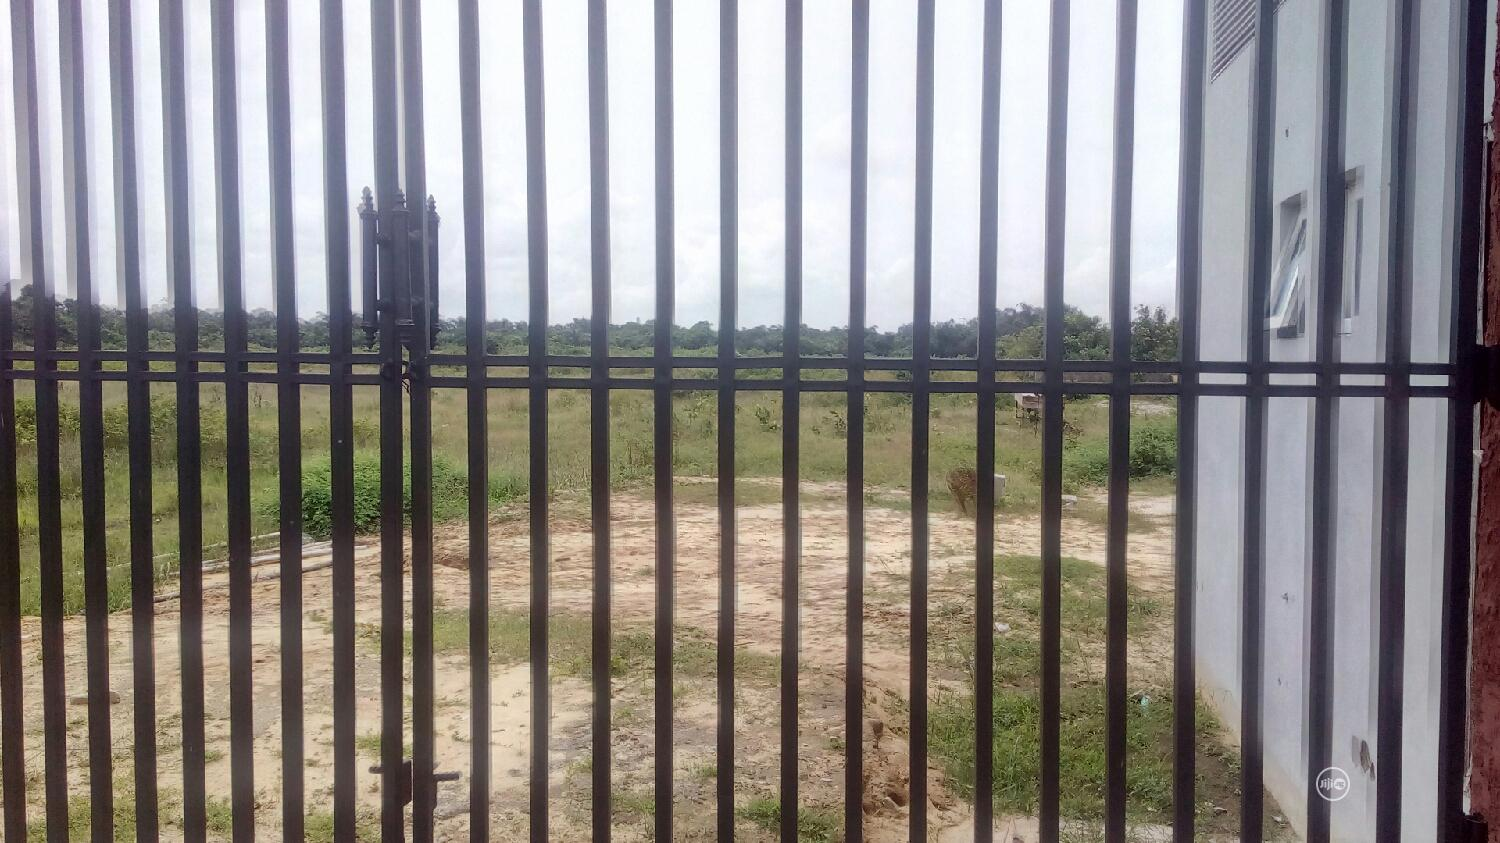 Land For Sale at Fairfield by Cedarwood Estate, Ibeju Lekki. | Land & Plots For Sale for sale in Ibeju, Lagos State, Nigeria